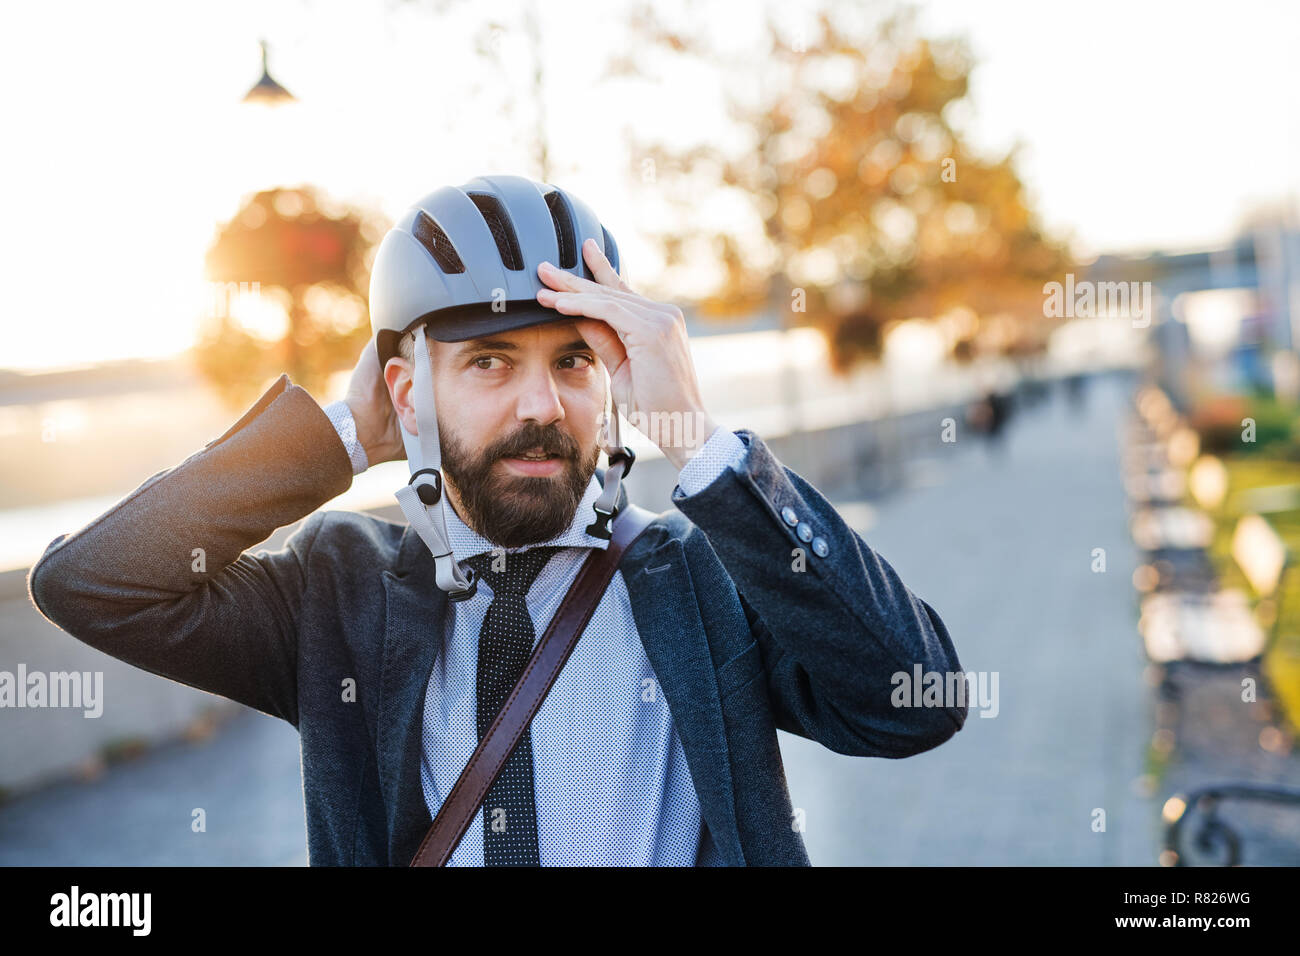 Businessman commuter traveling home from work in city, putting on a bicycle helmet. Stock Photo